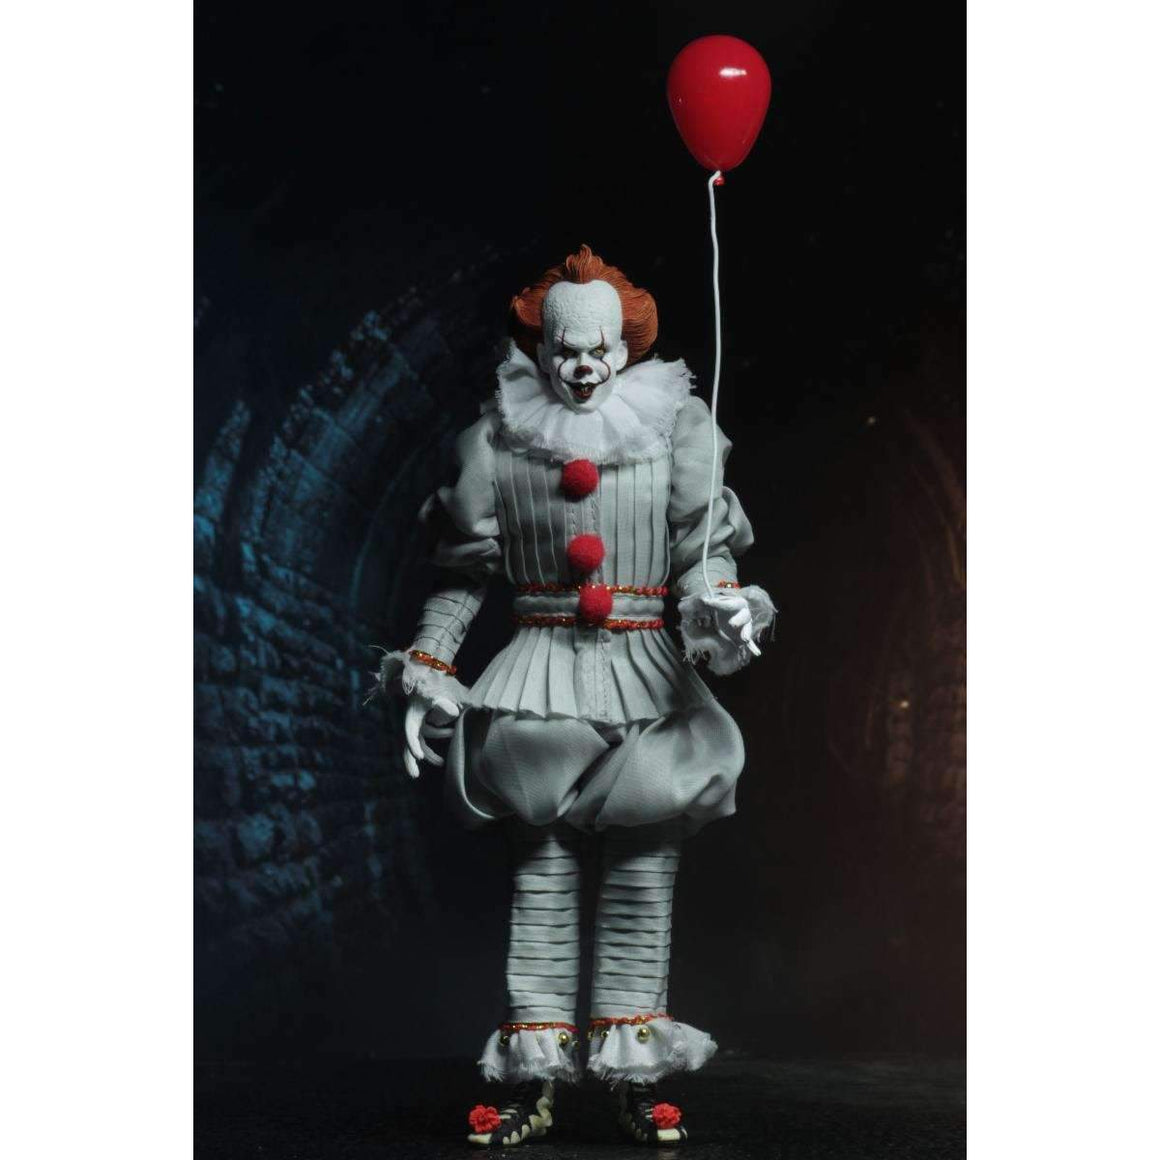 "IT - 8"" Clothed Action Figure - Pennywise (2017) - Q3 2019"